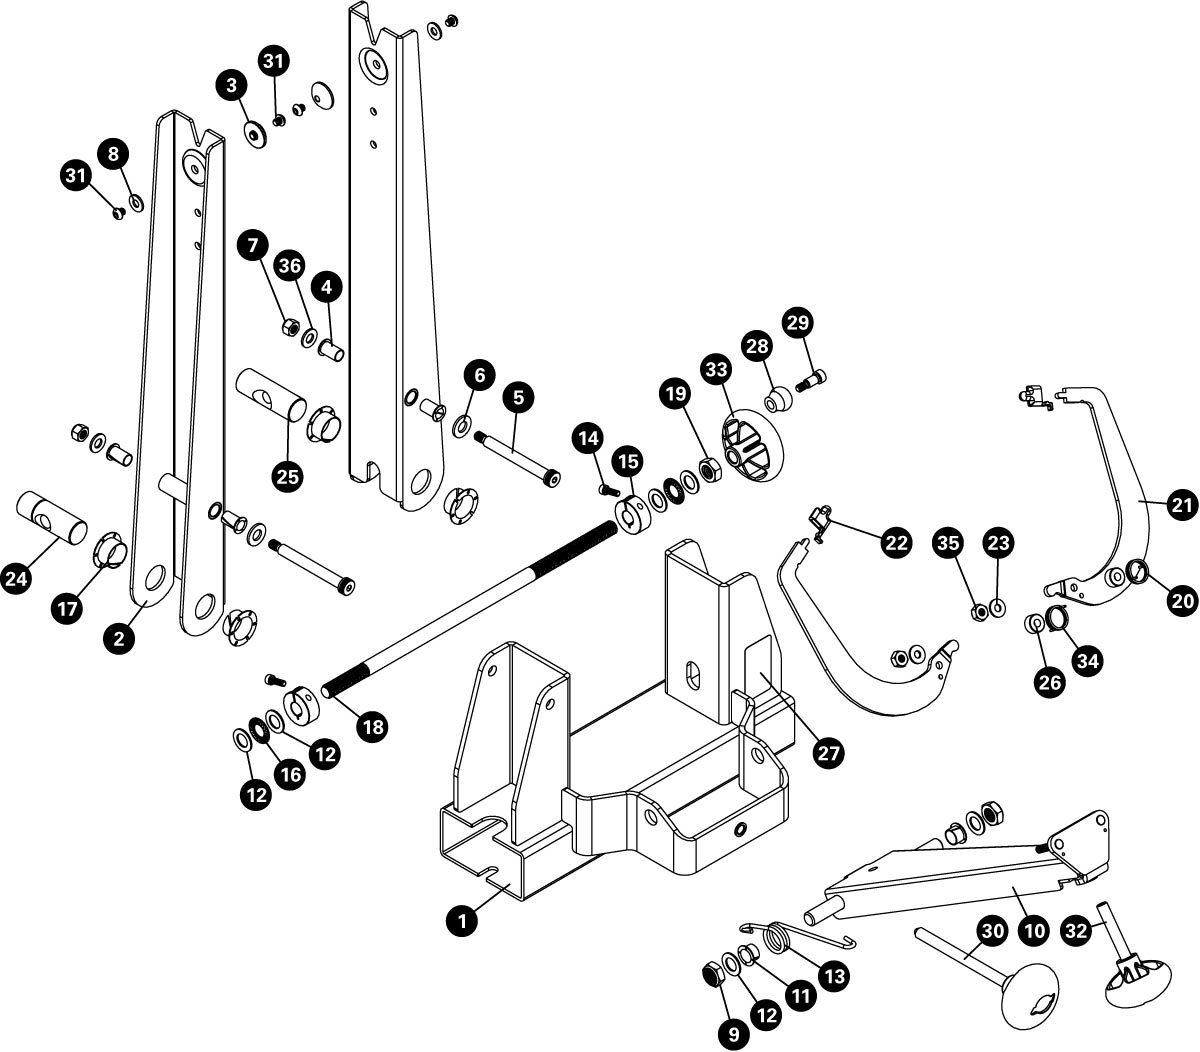 Parts diagram for TS-4.2 Professional Wheel Truing Stand, click to enlarge